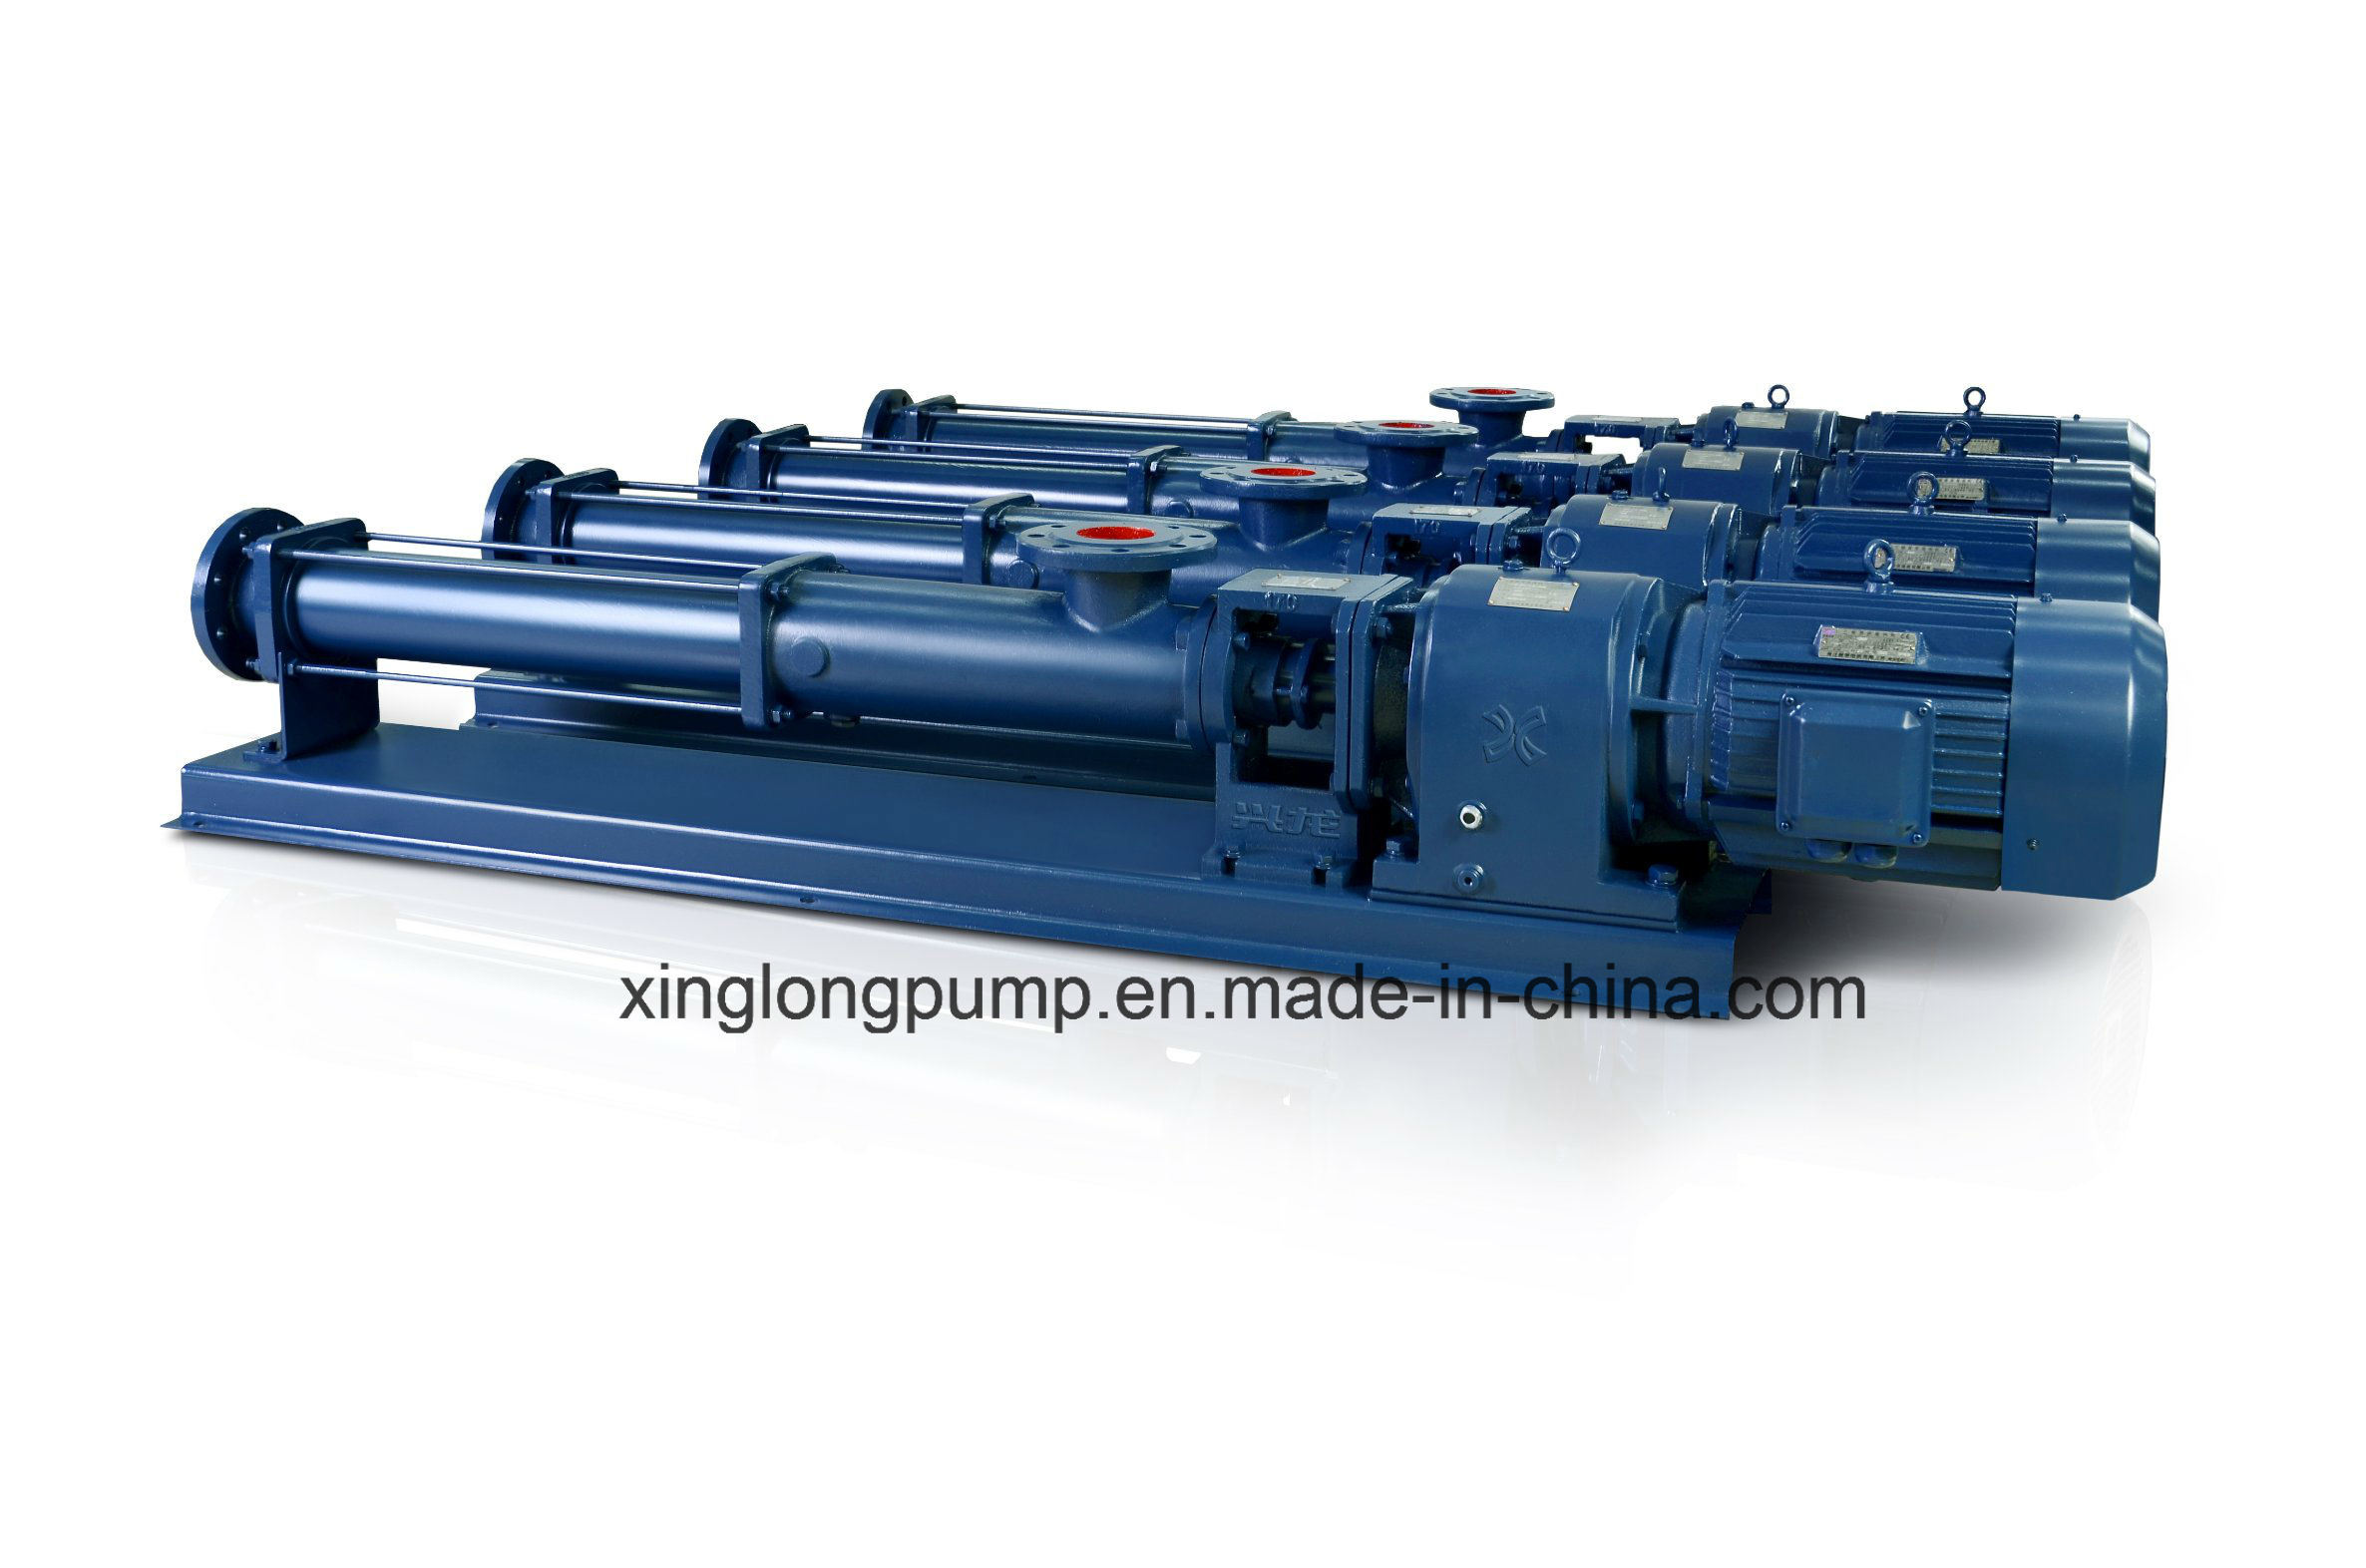 Xinglong Progressive Cavity Helical Mono Screw Pumps for Viscous Liquids